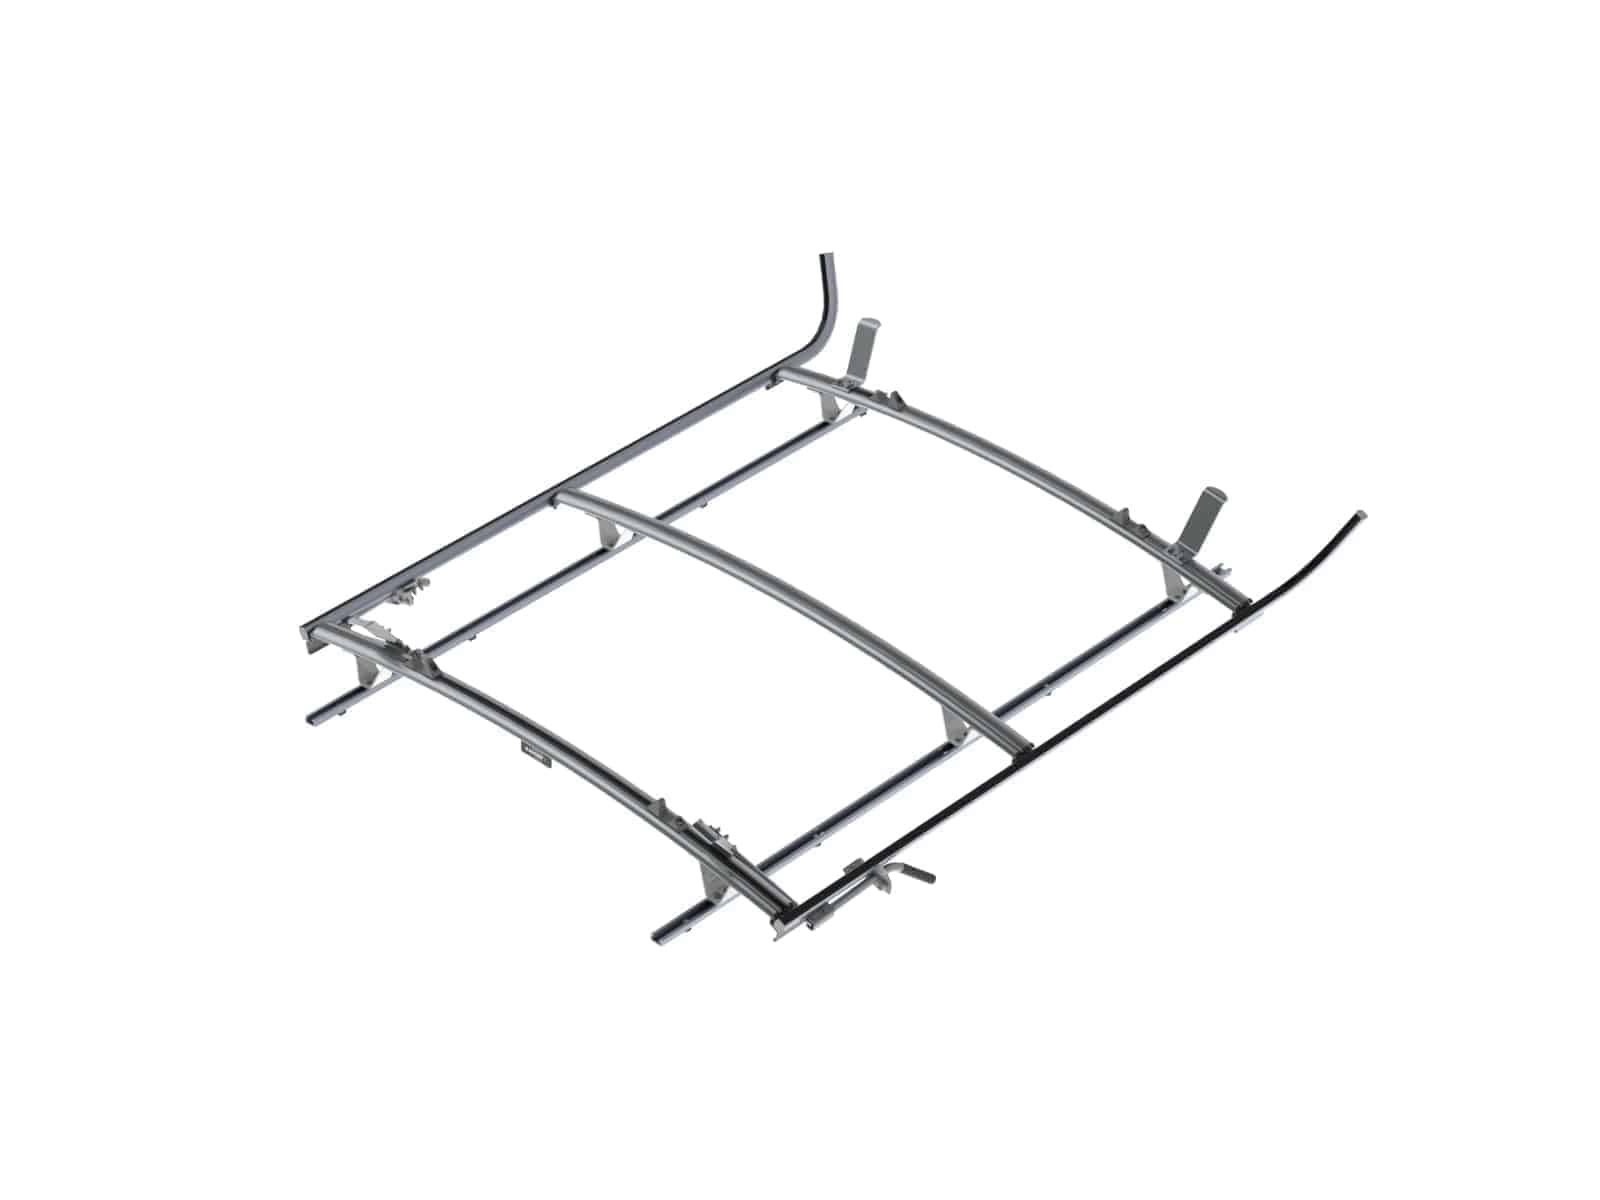 Double Side Ladder Rack For Ford Transit, LWB, 3 Bar